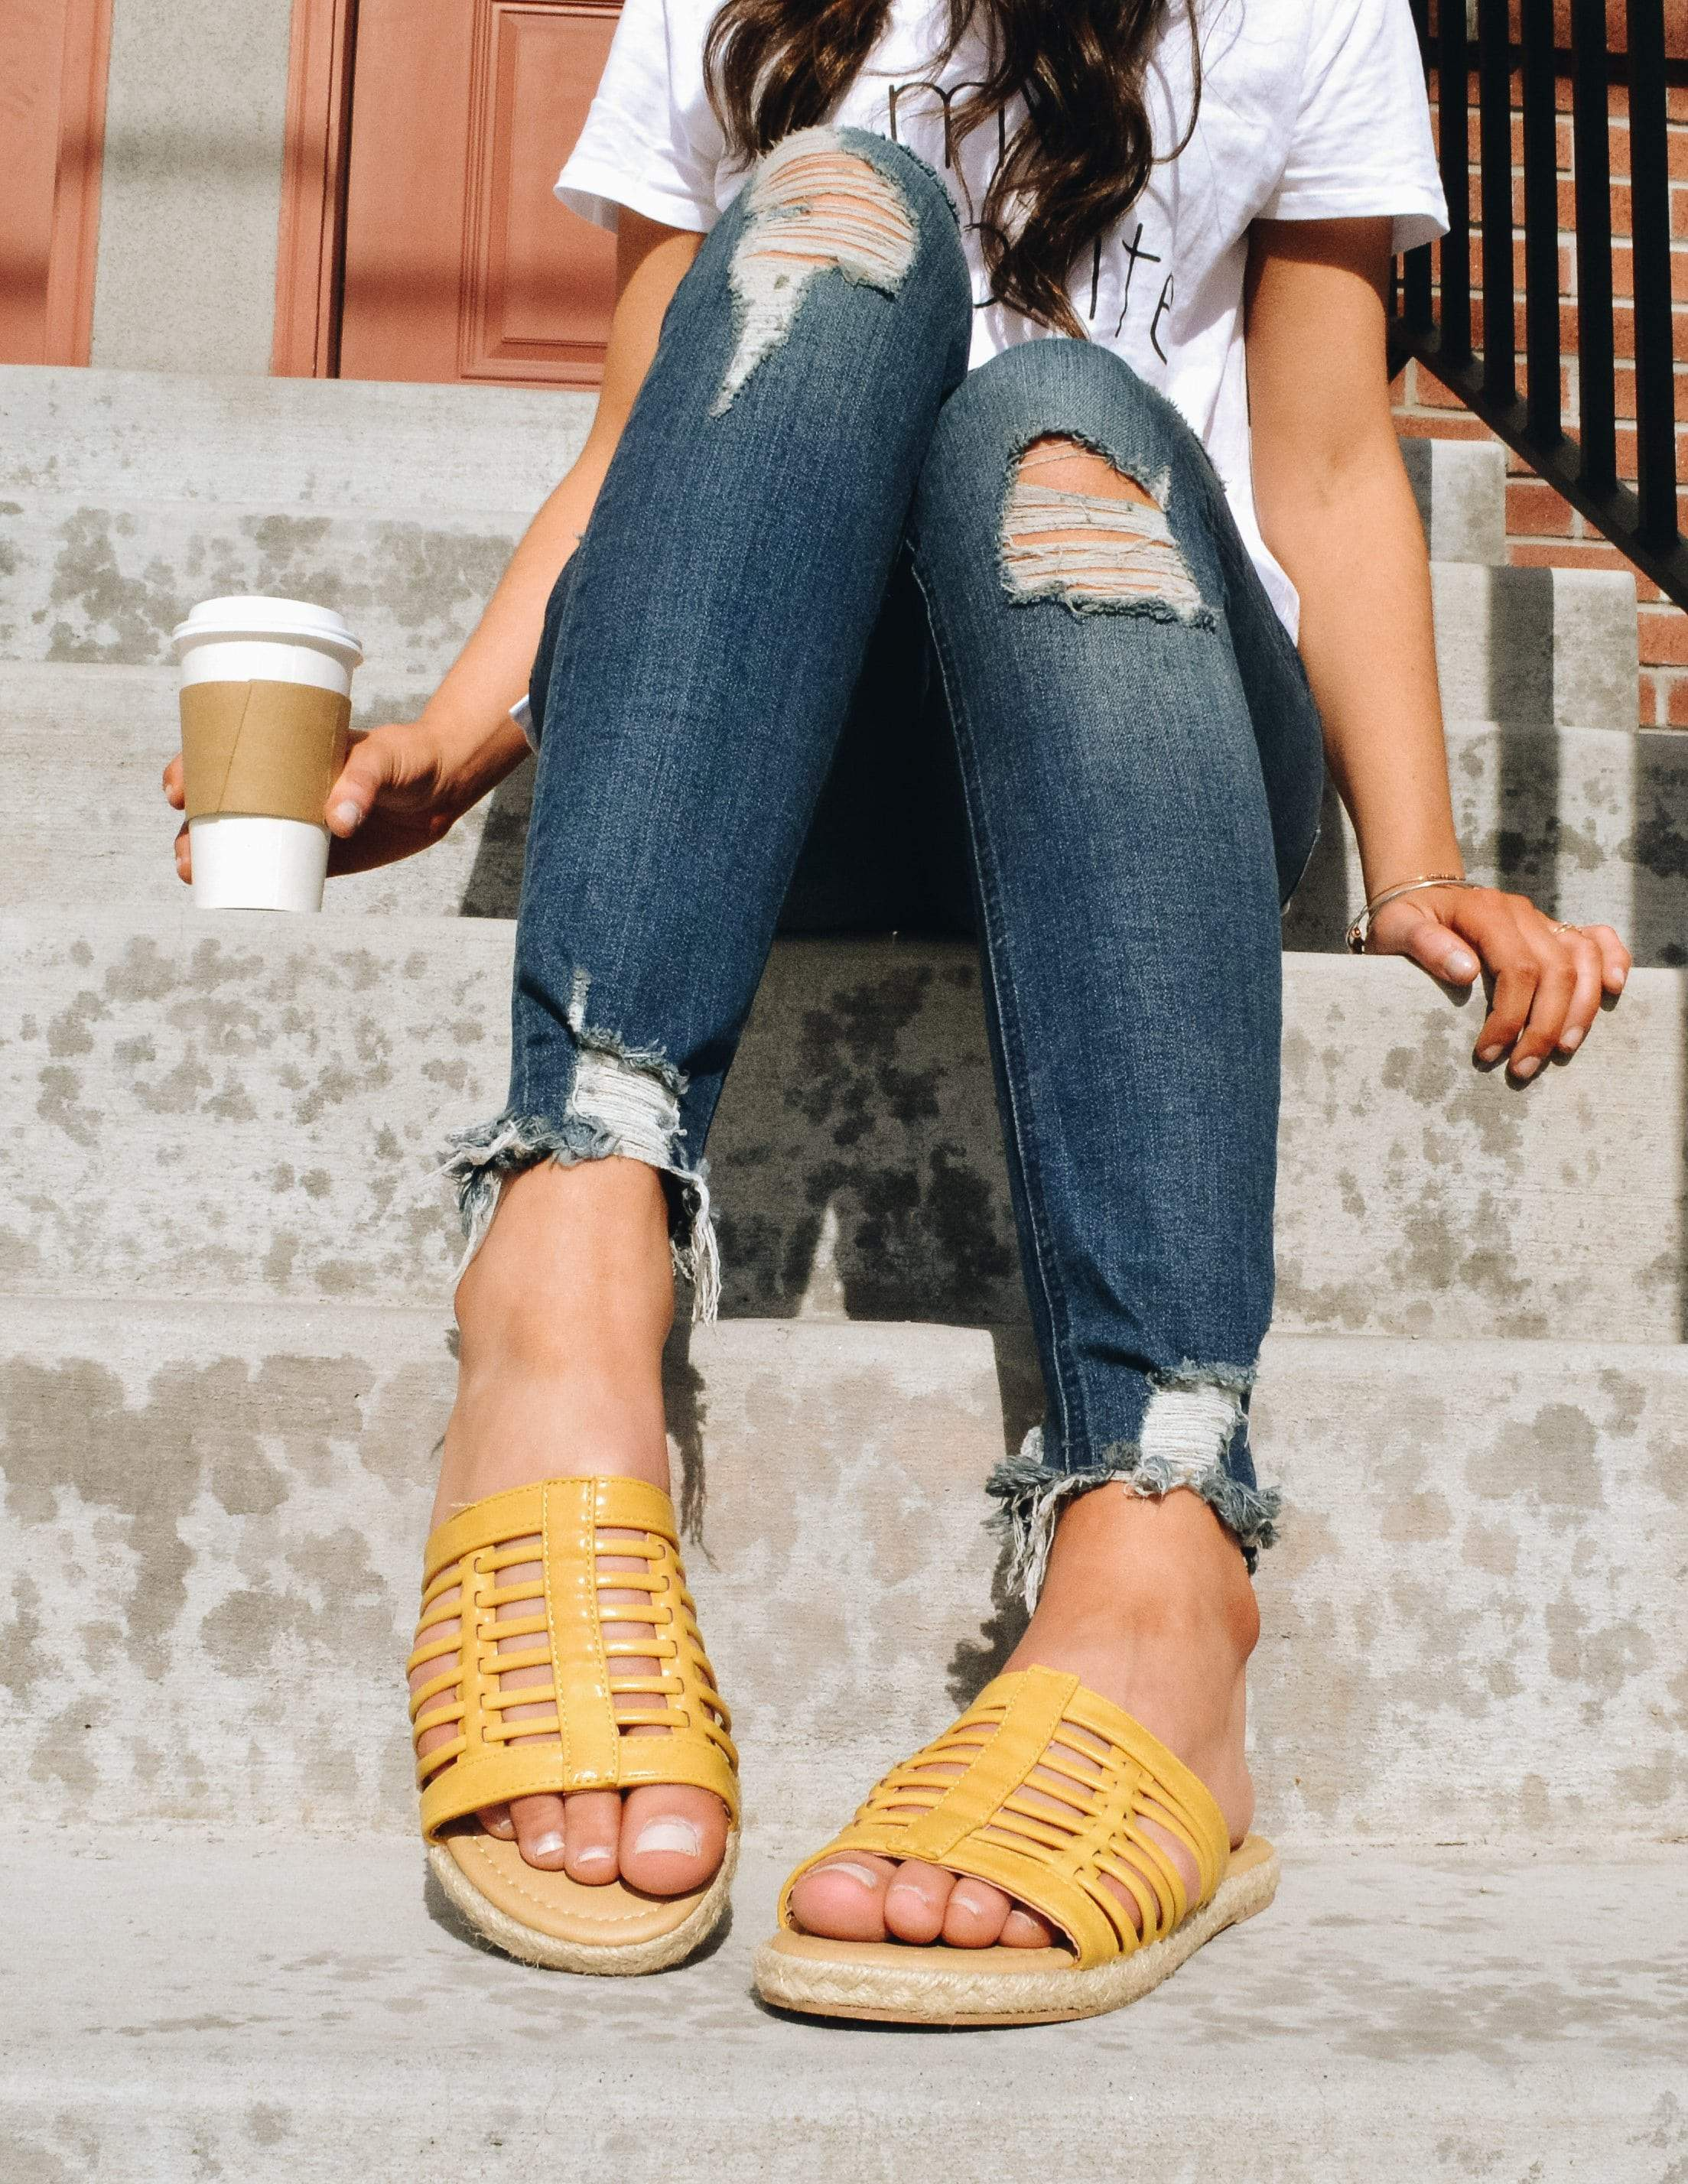 Model sitting on steps outside in tee, denim, and yellow sandals